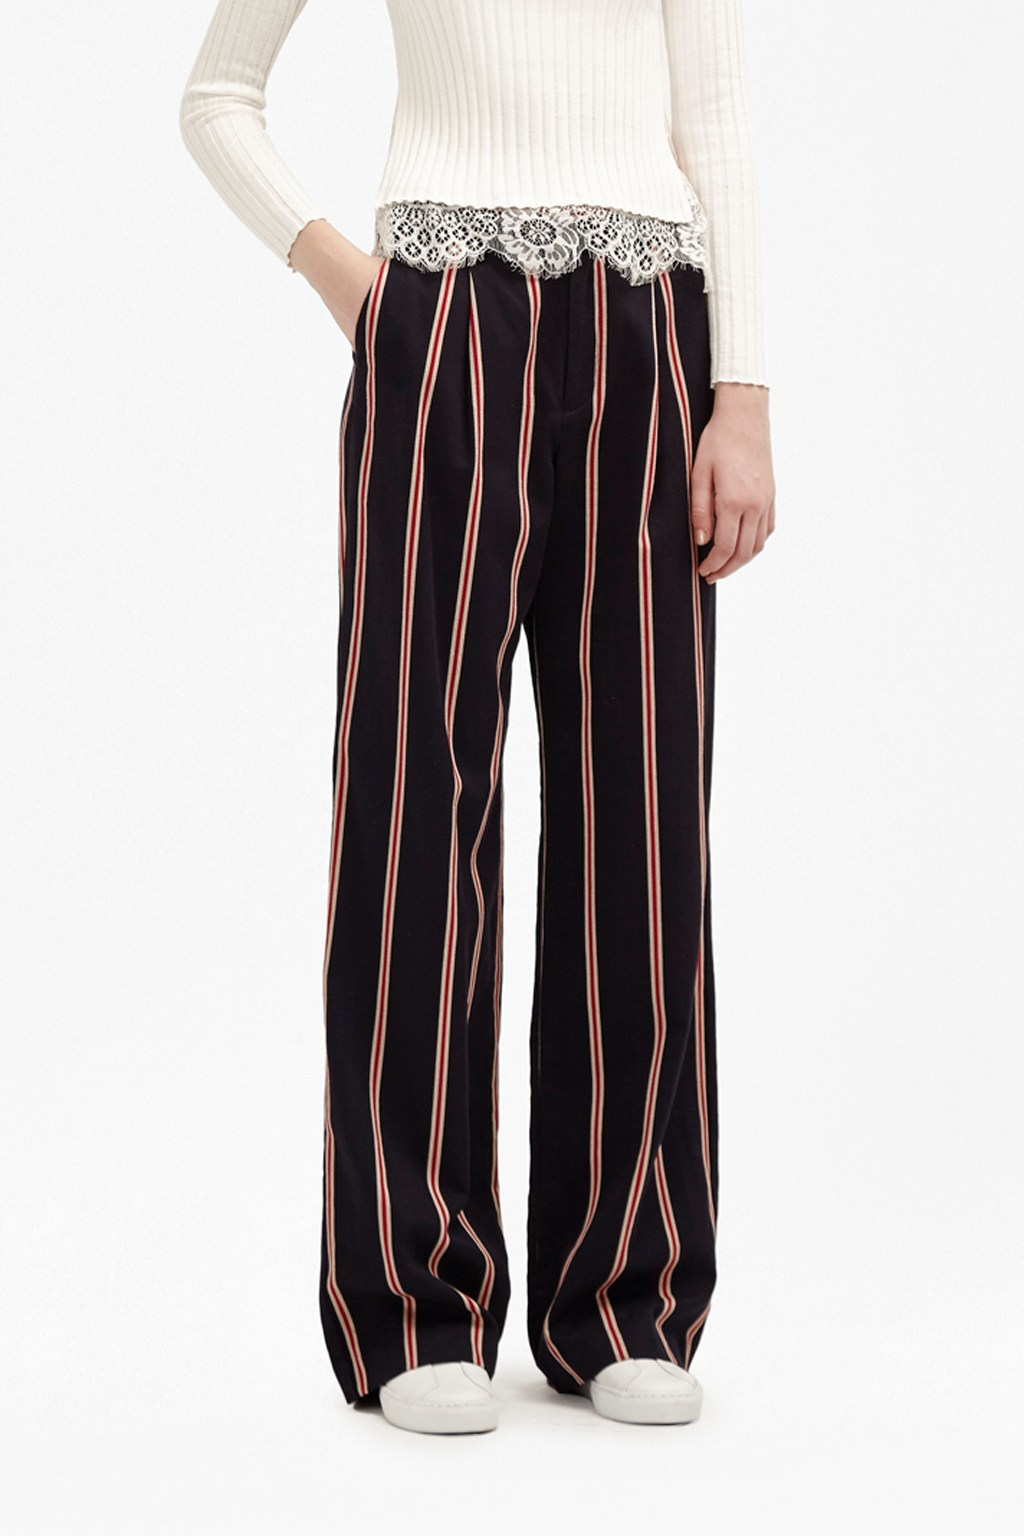 Freddy Stripe Coord Wide Leg Trousers Indigo/Cream/Red - length: standard; pattern: vertical stripes; waist: mid/regular rise; secondary colour: true red; predominant colour: black; occasions: casual, creative work; fibres: polyester/polyamide - 100%; texture group: crepes; fit: wide leg; pattern type: fabric; style: standard; season: a/w 2016